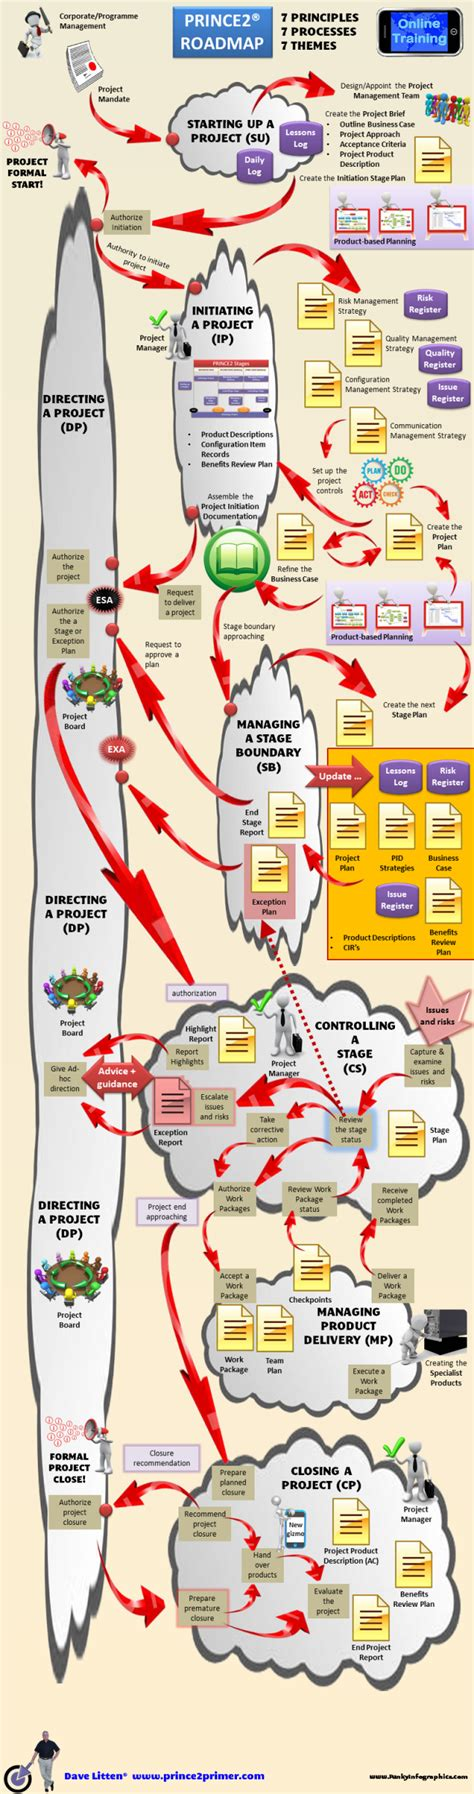 process road map prince2 road map infographic prince2 2017 primer